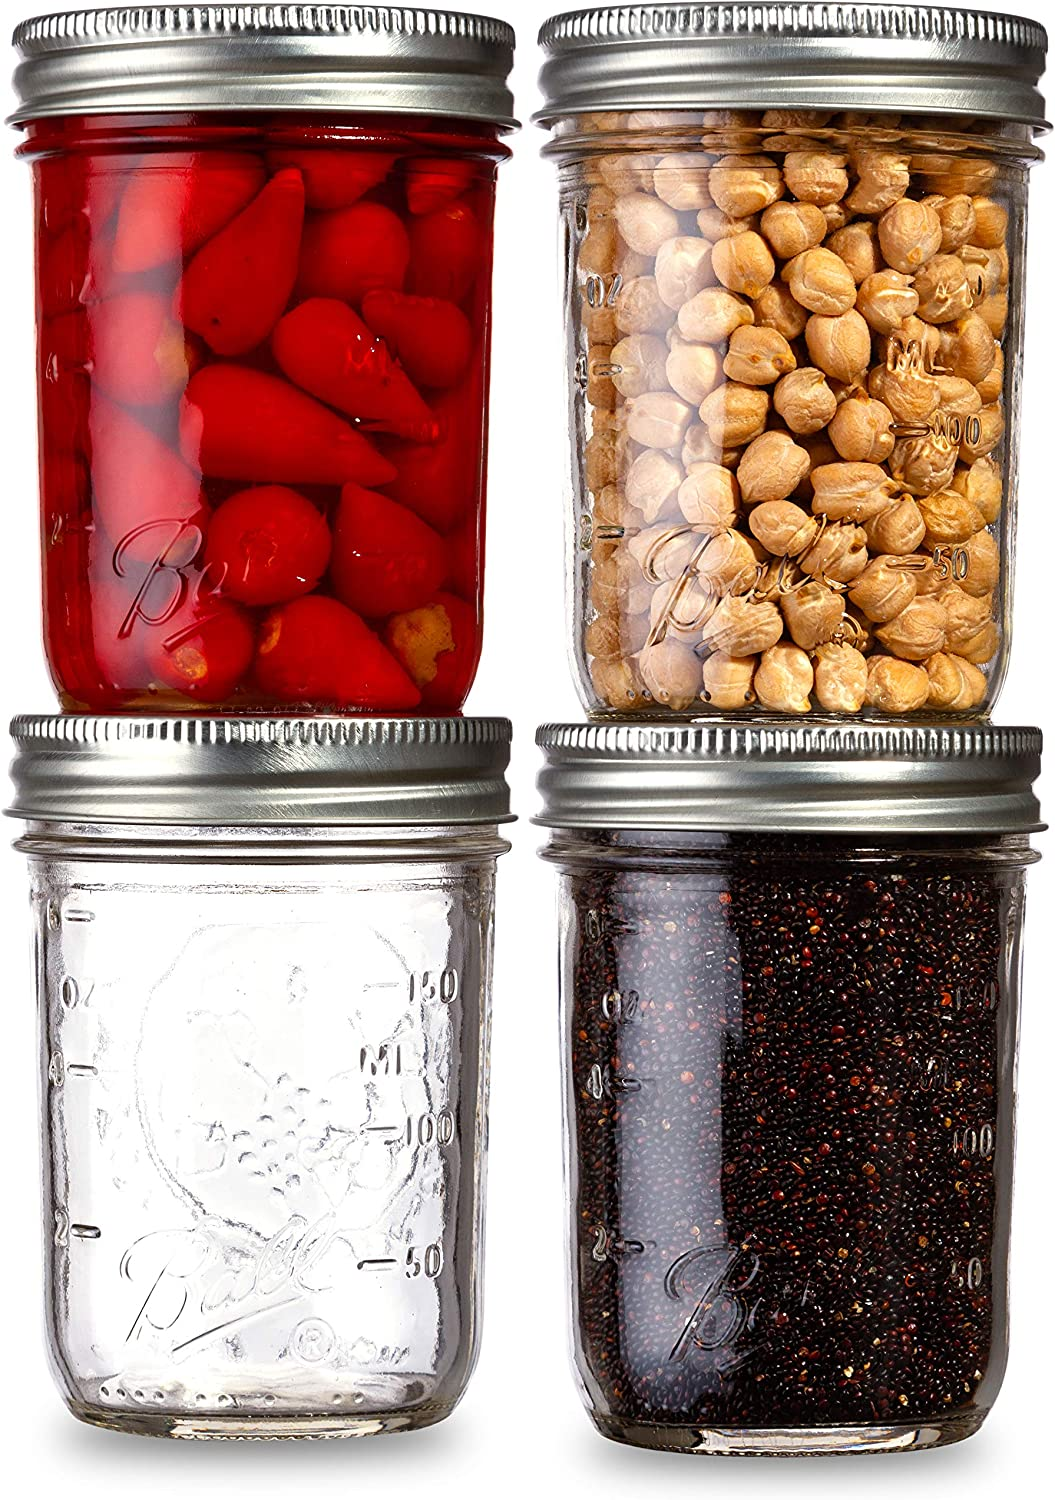 Ball Mason Jars Regular Mouth 8 oz Bundle with Non Slip Jar Opener- Set of 4 Mason Jars - Canning Glass Jars with Lids and Bands